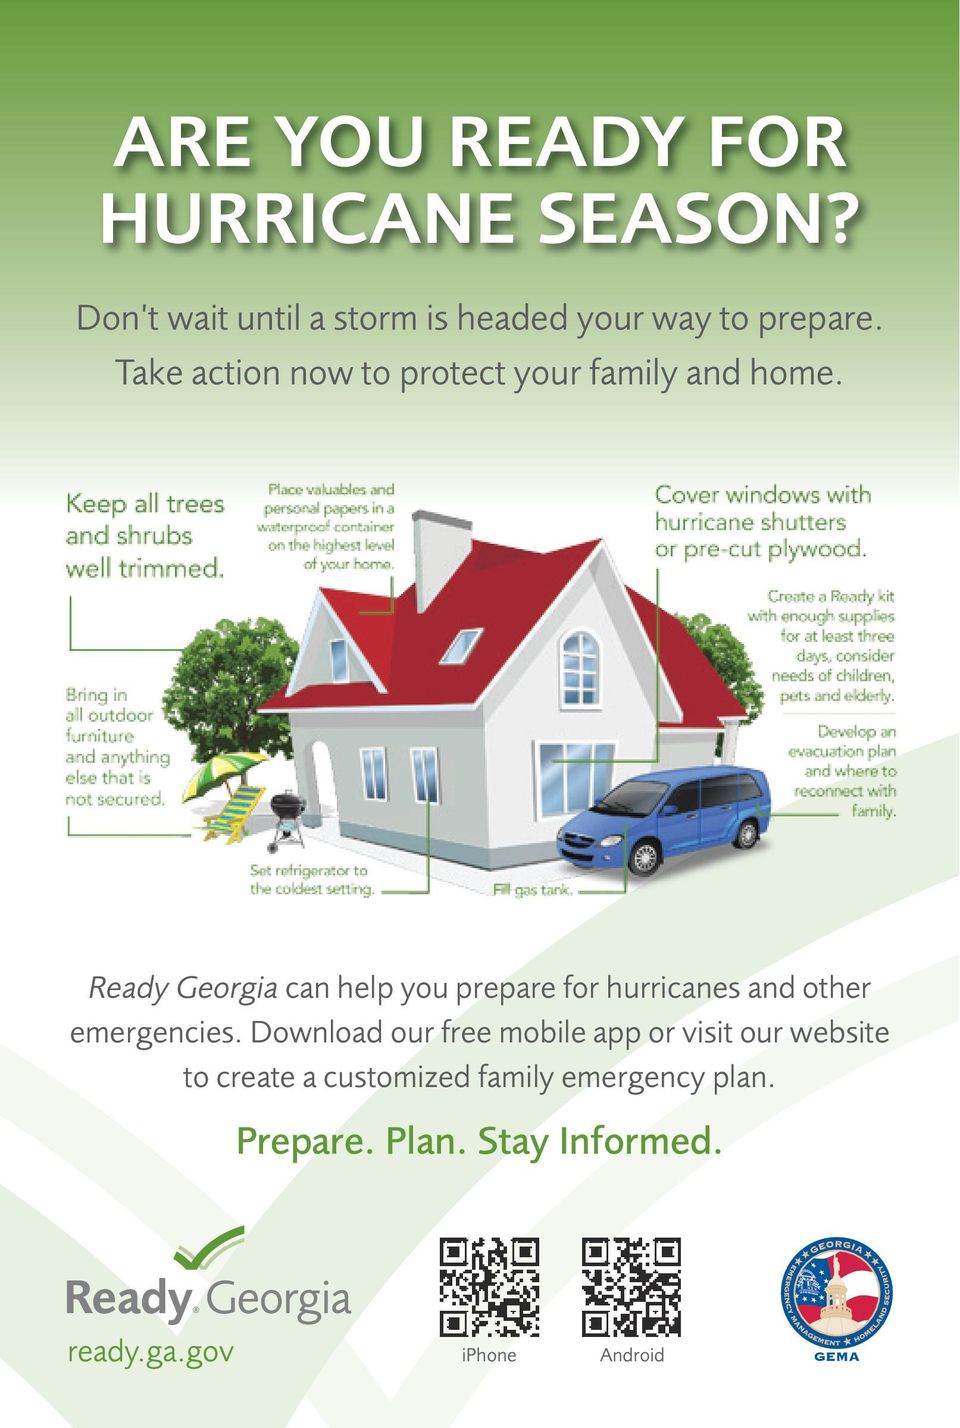 Ready Georgia can help you prepare for hurricanes and other emergencies.